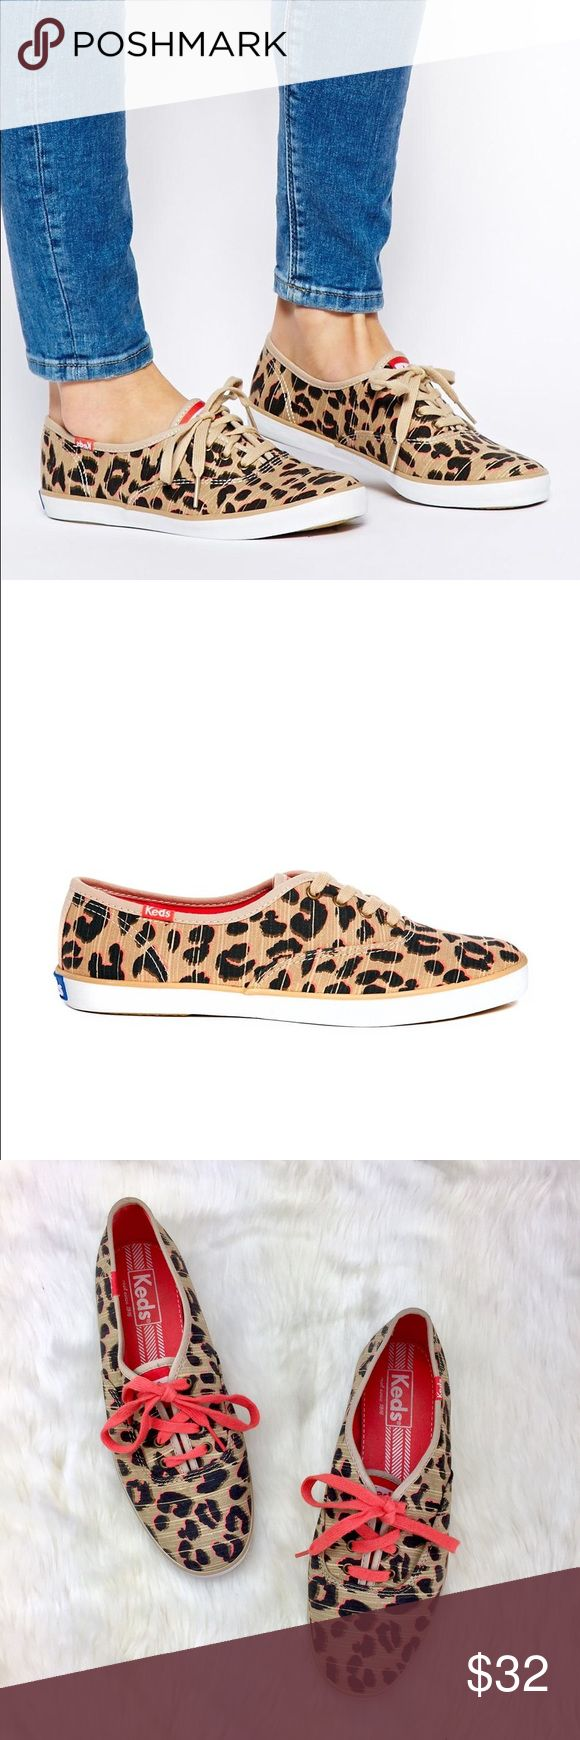 Keds Champion Leopard Plimsoll Trainers Adorable multi-color leopard print sneakers in the classic Keds Champion style. Only worn once. Practically brand new! Keds Shoes Sneakers